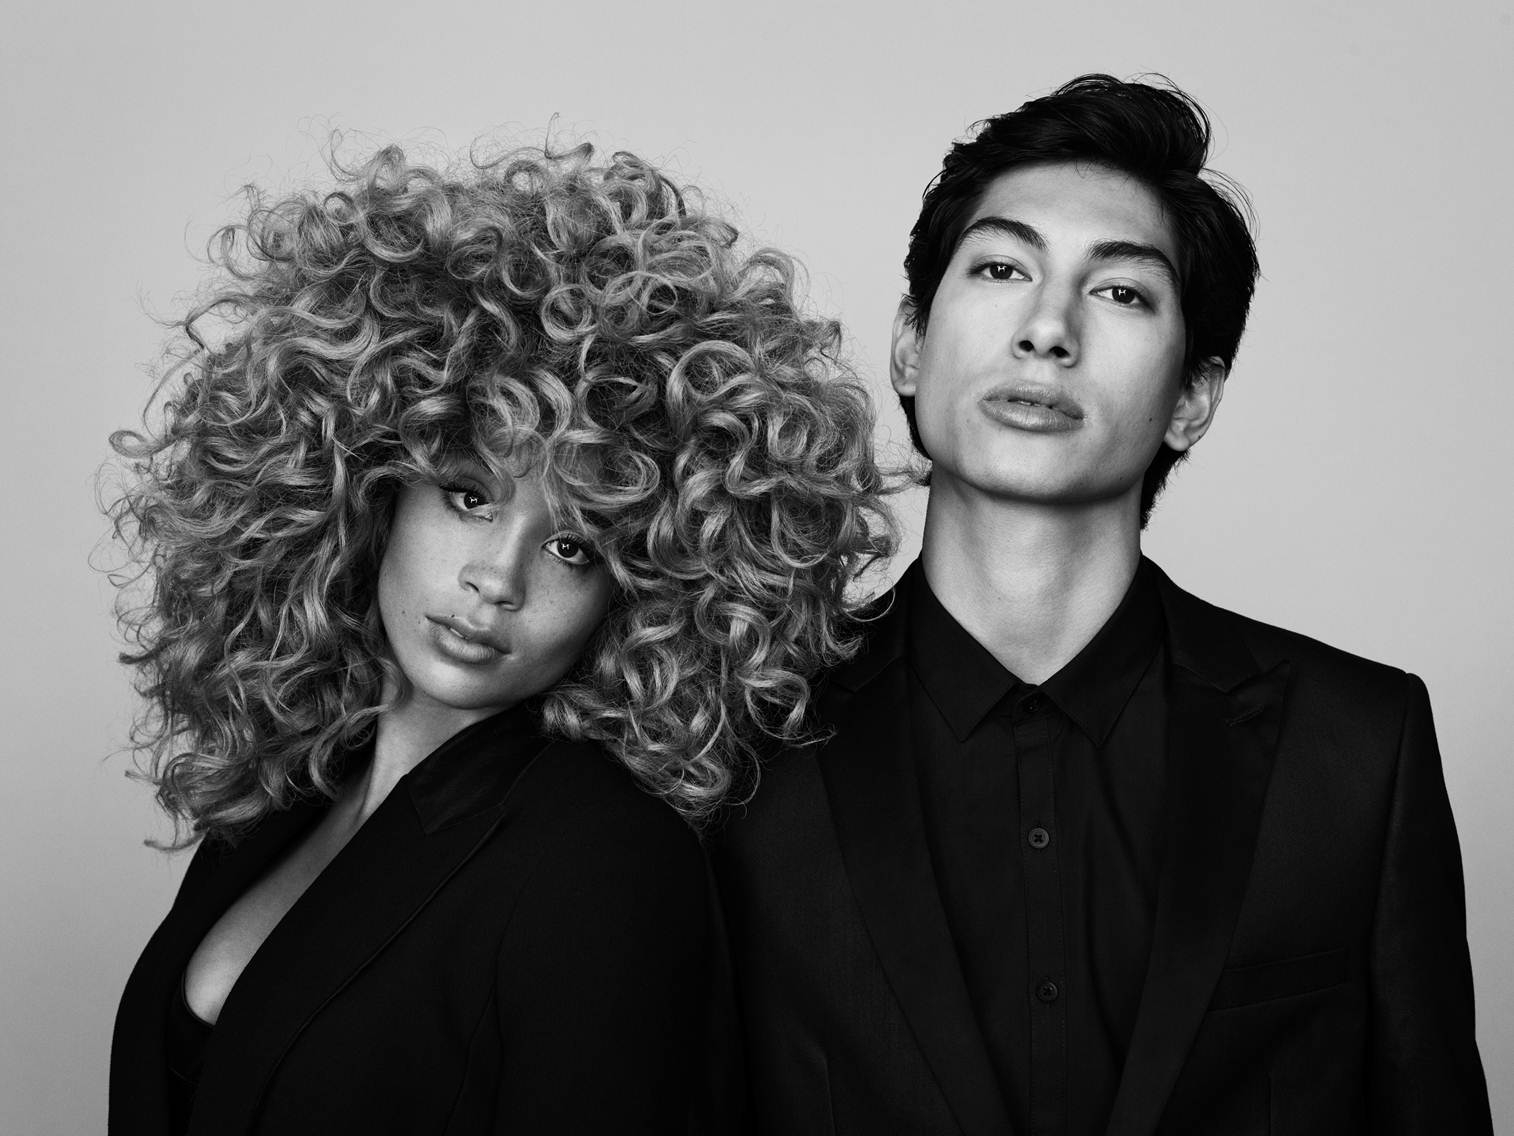 Lion Babe to headline Heaven